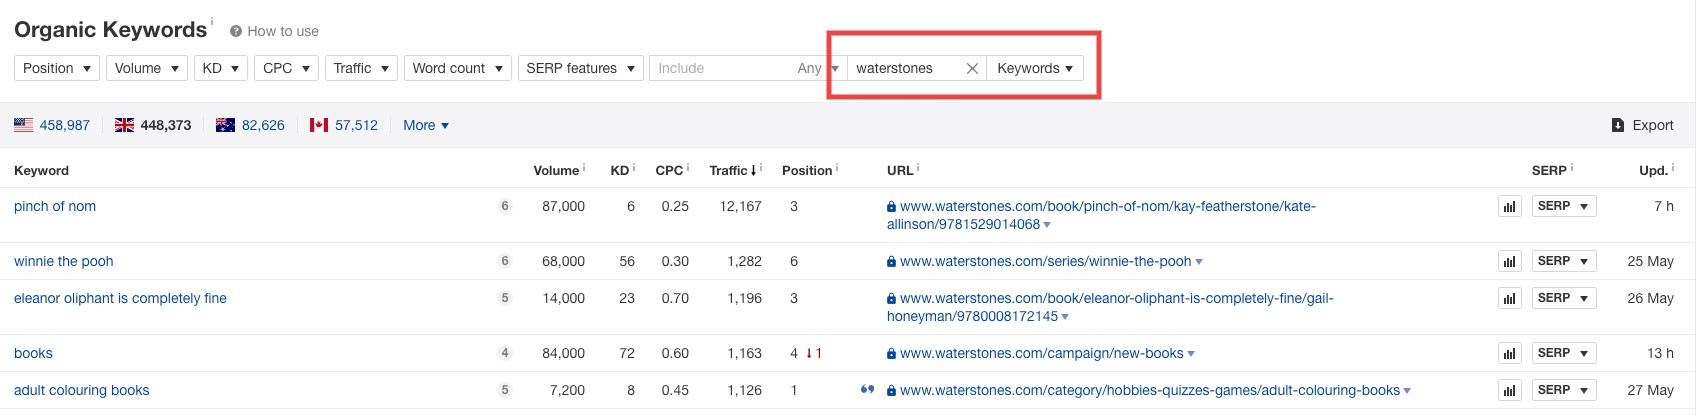 Ahrefs keyword data, showing key columns such as volume, difficulty and expected traffic.